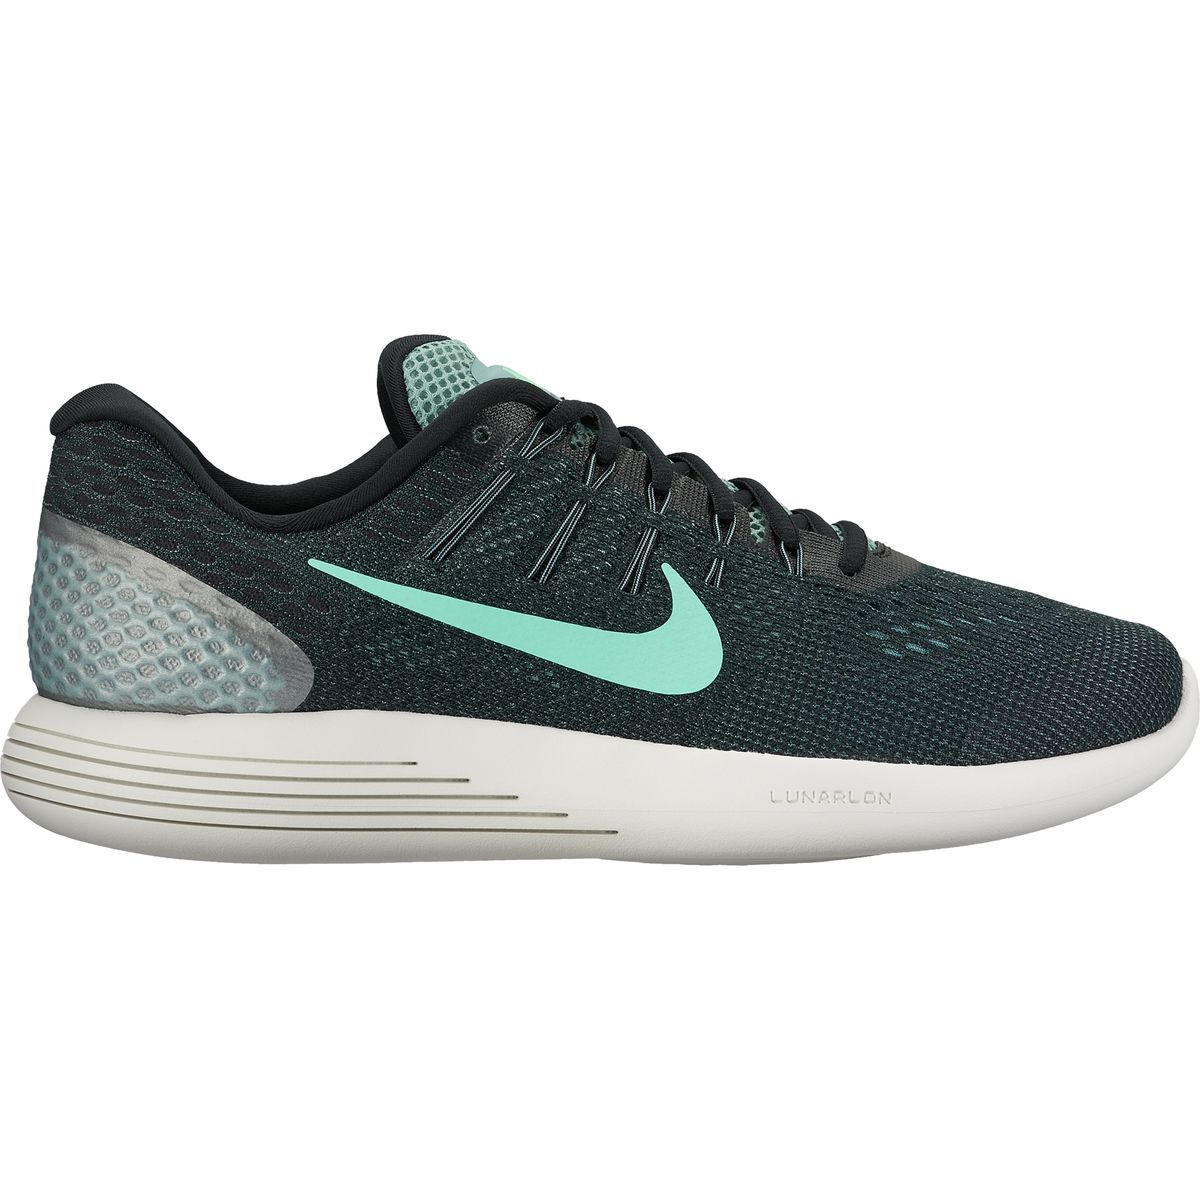 quality design 673ab bfcd0 purchase nike lunarglide electric green bay 4ede5 750be